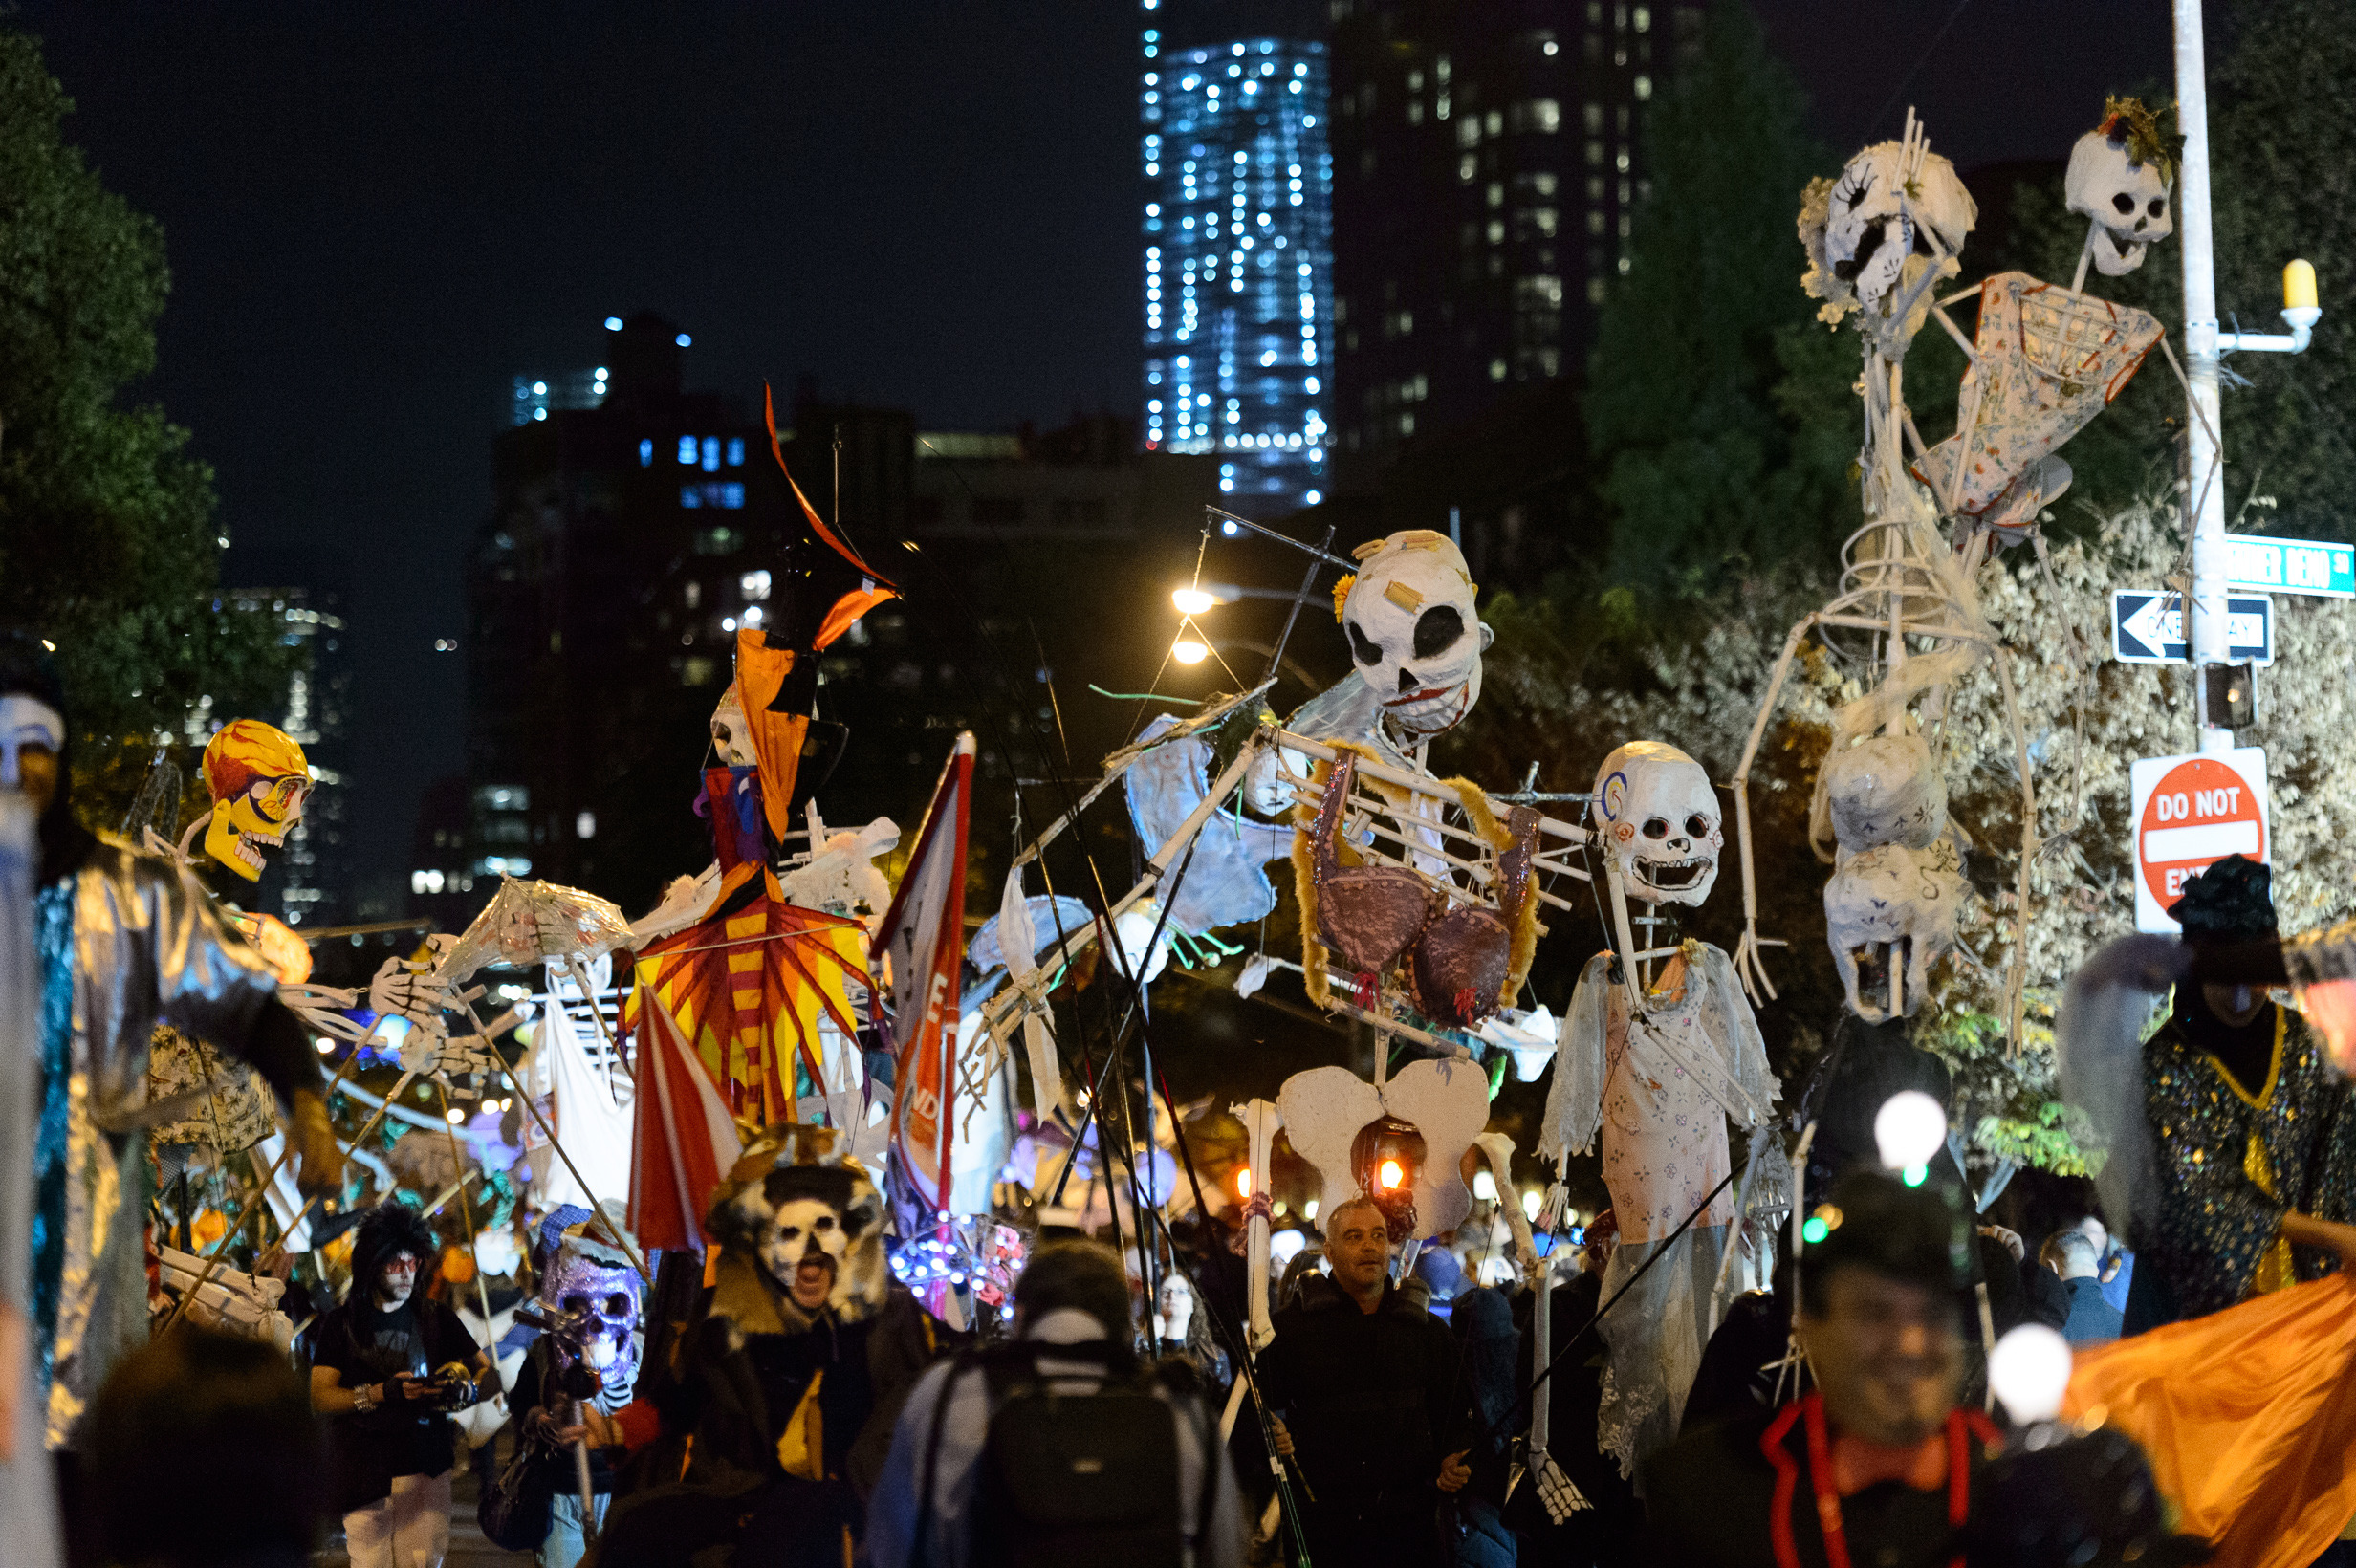 Decoration De Table Pour Halloween Have The Ultimate Halloween In Nyc At These Spooky Events